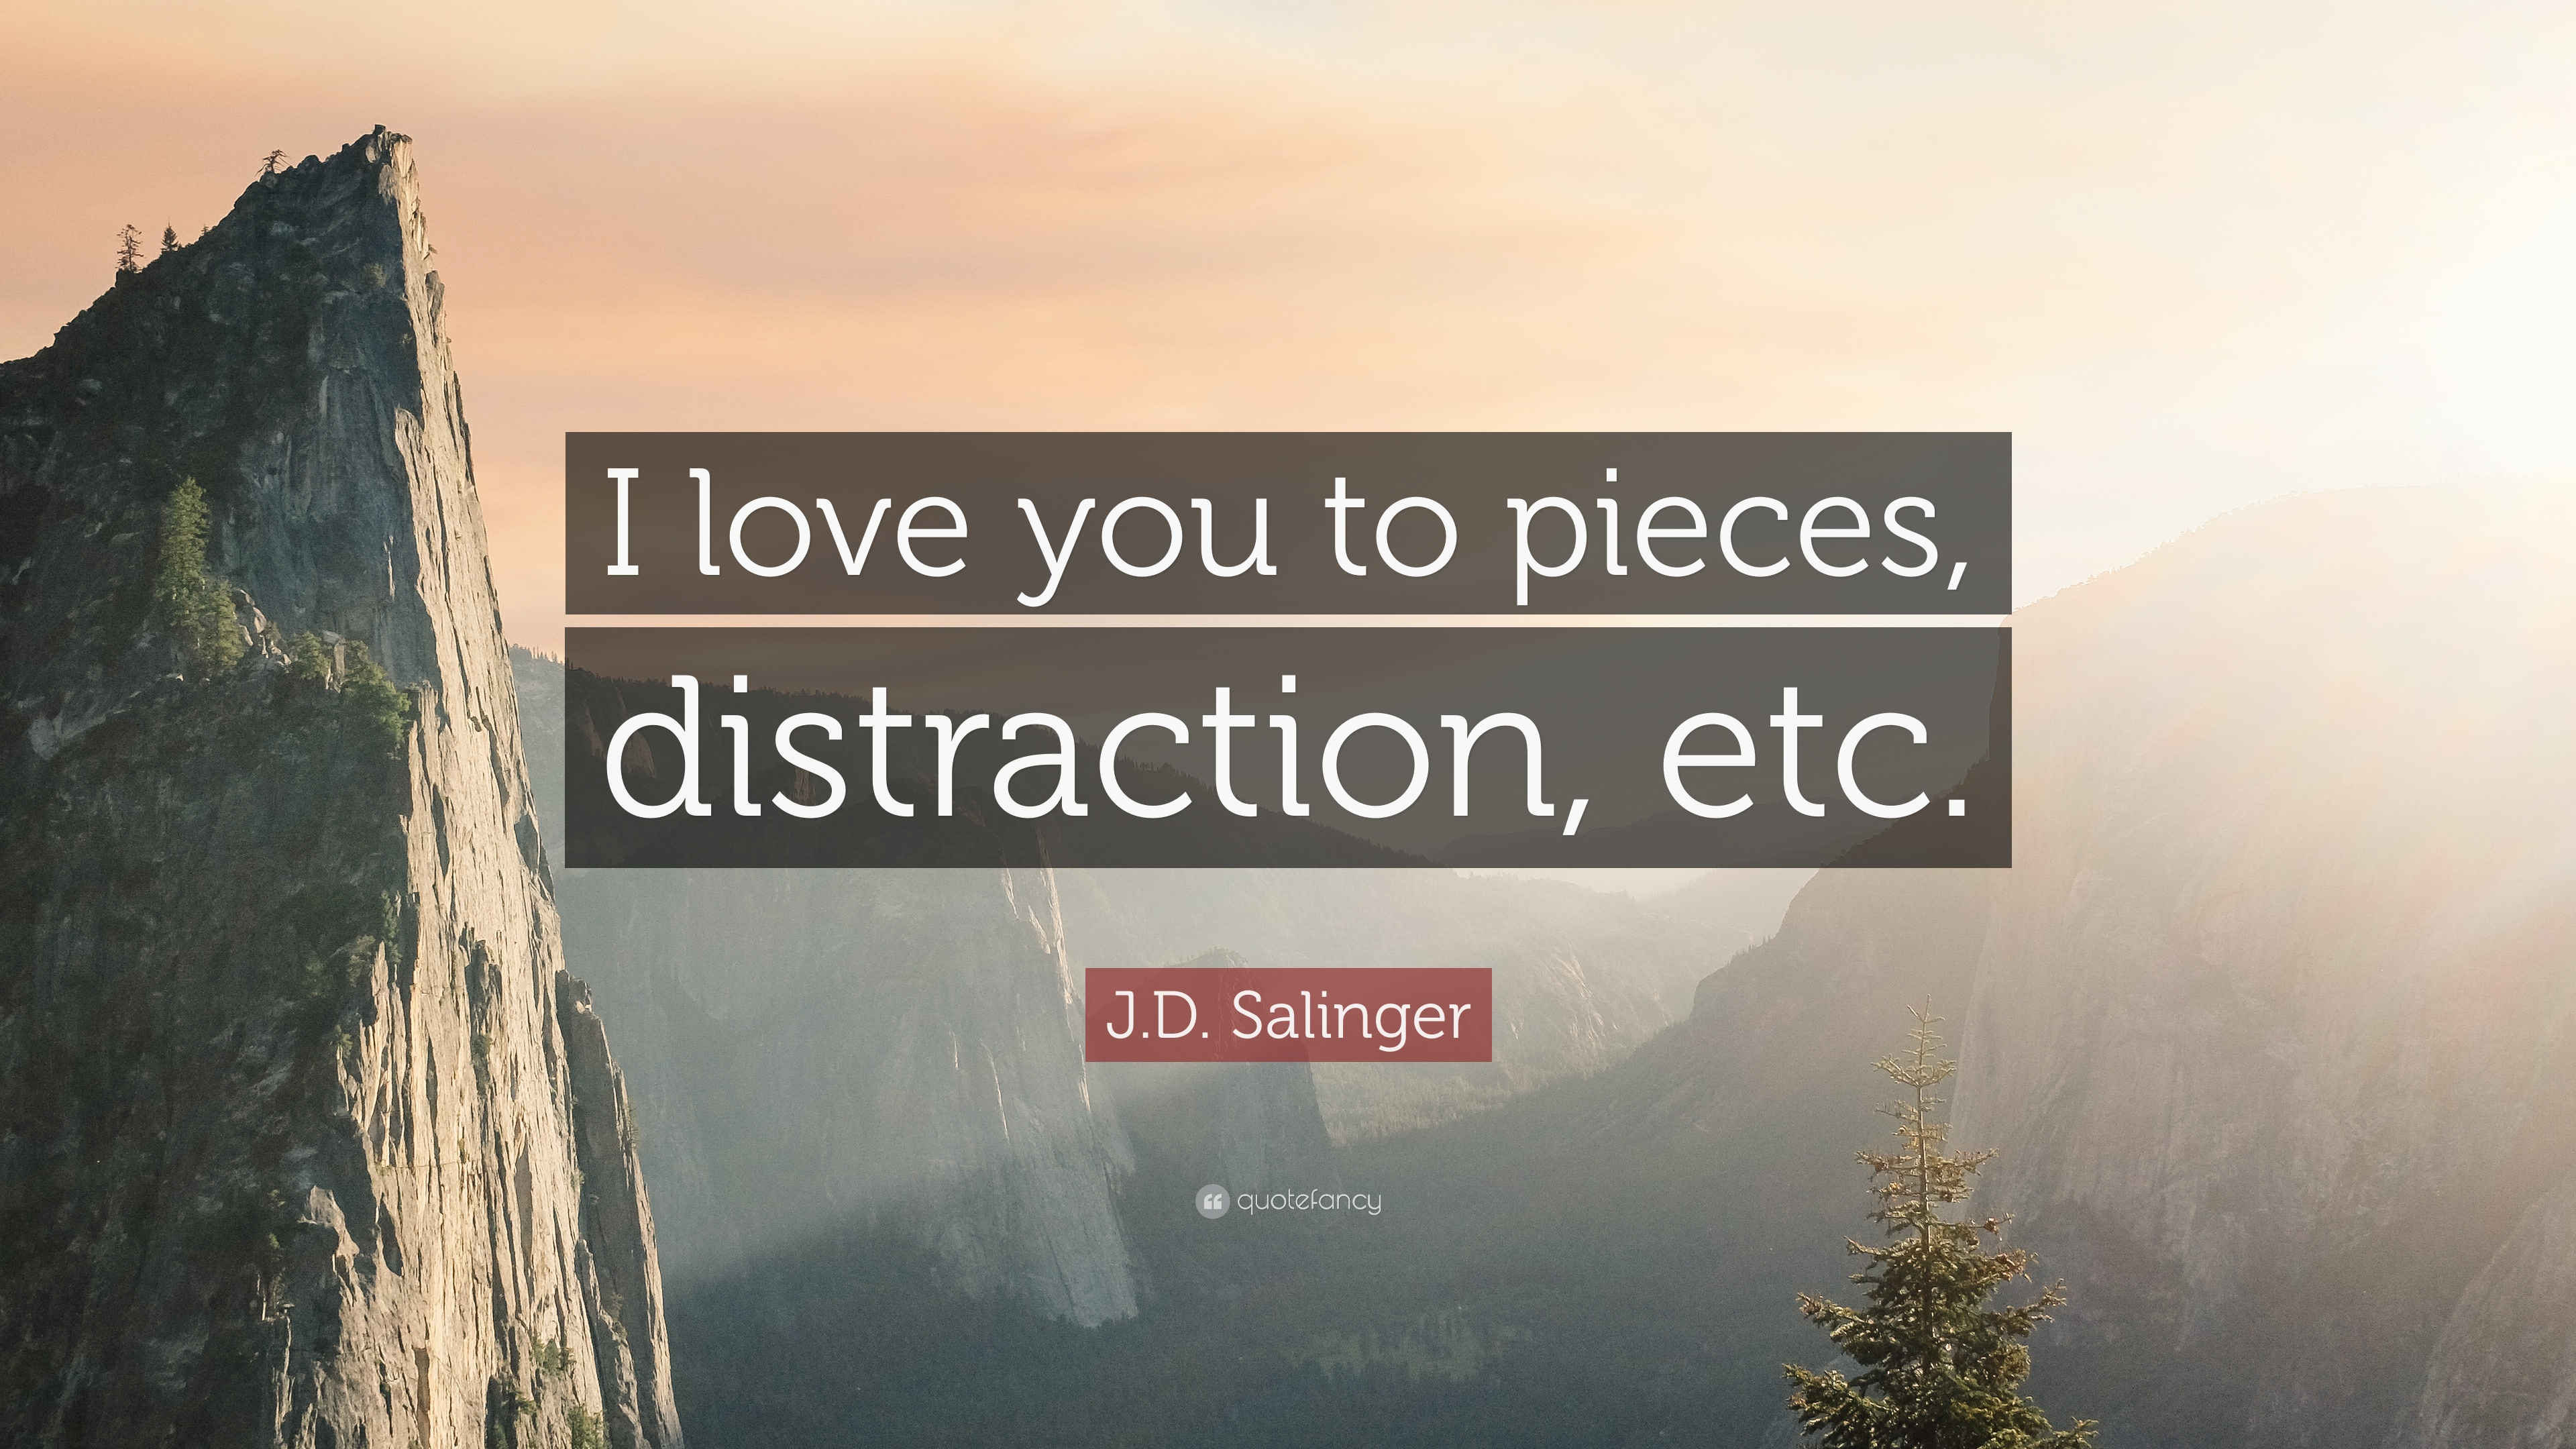 Jd Salinger Quote I Love You To Pieces Distraction Etc 9